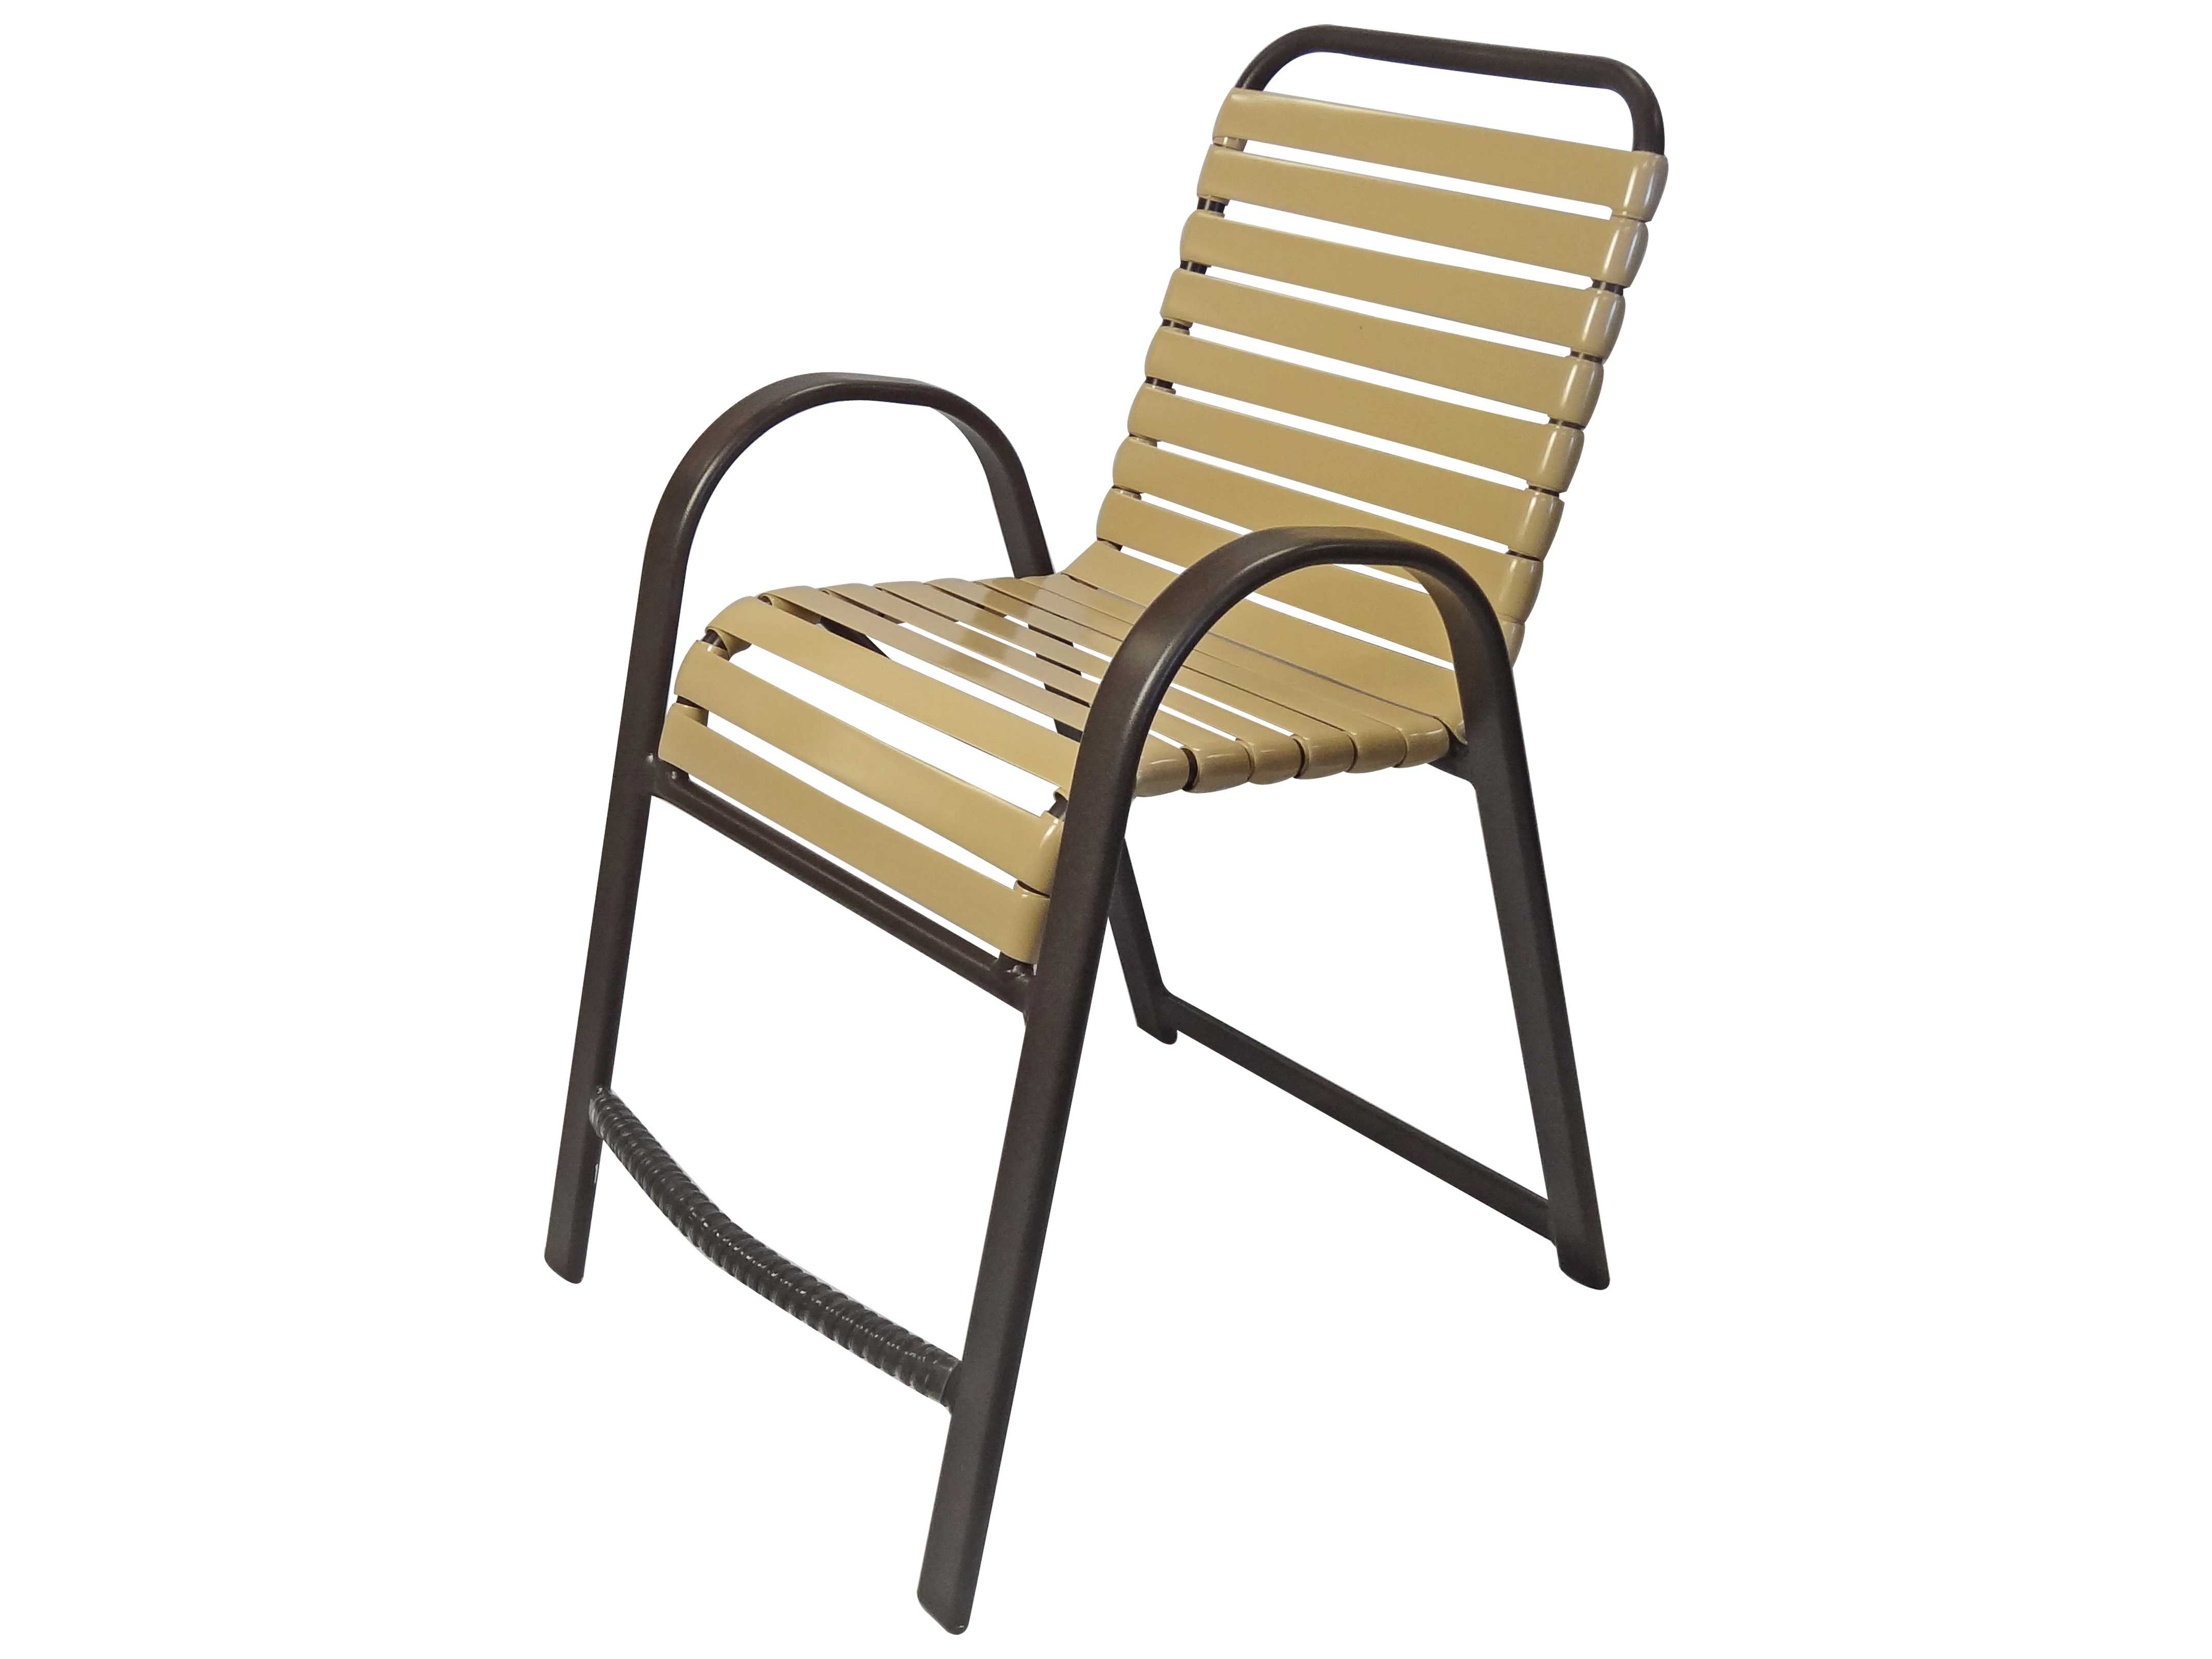 Windward Design Group Anna Maria Strap Aluminum Balcony Chair